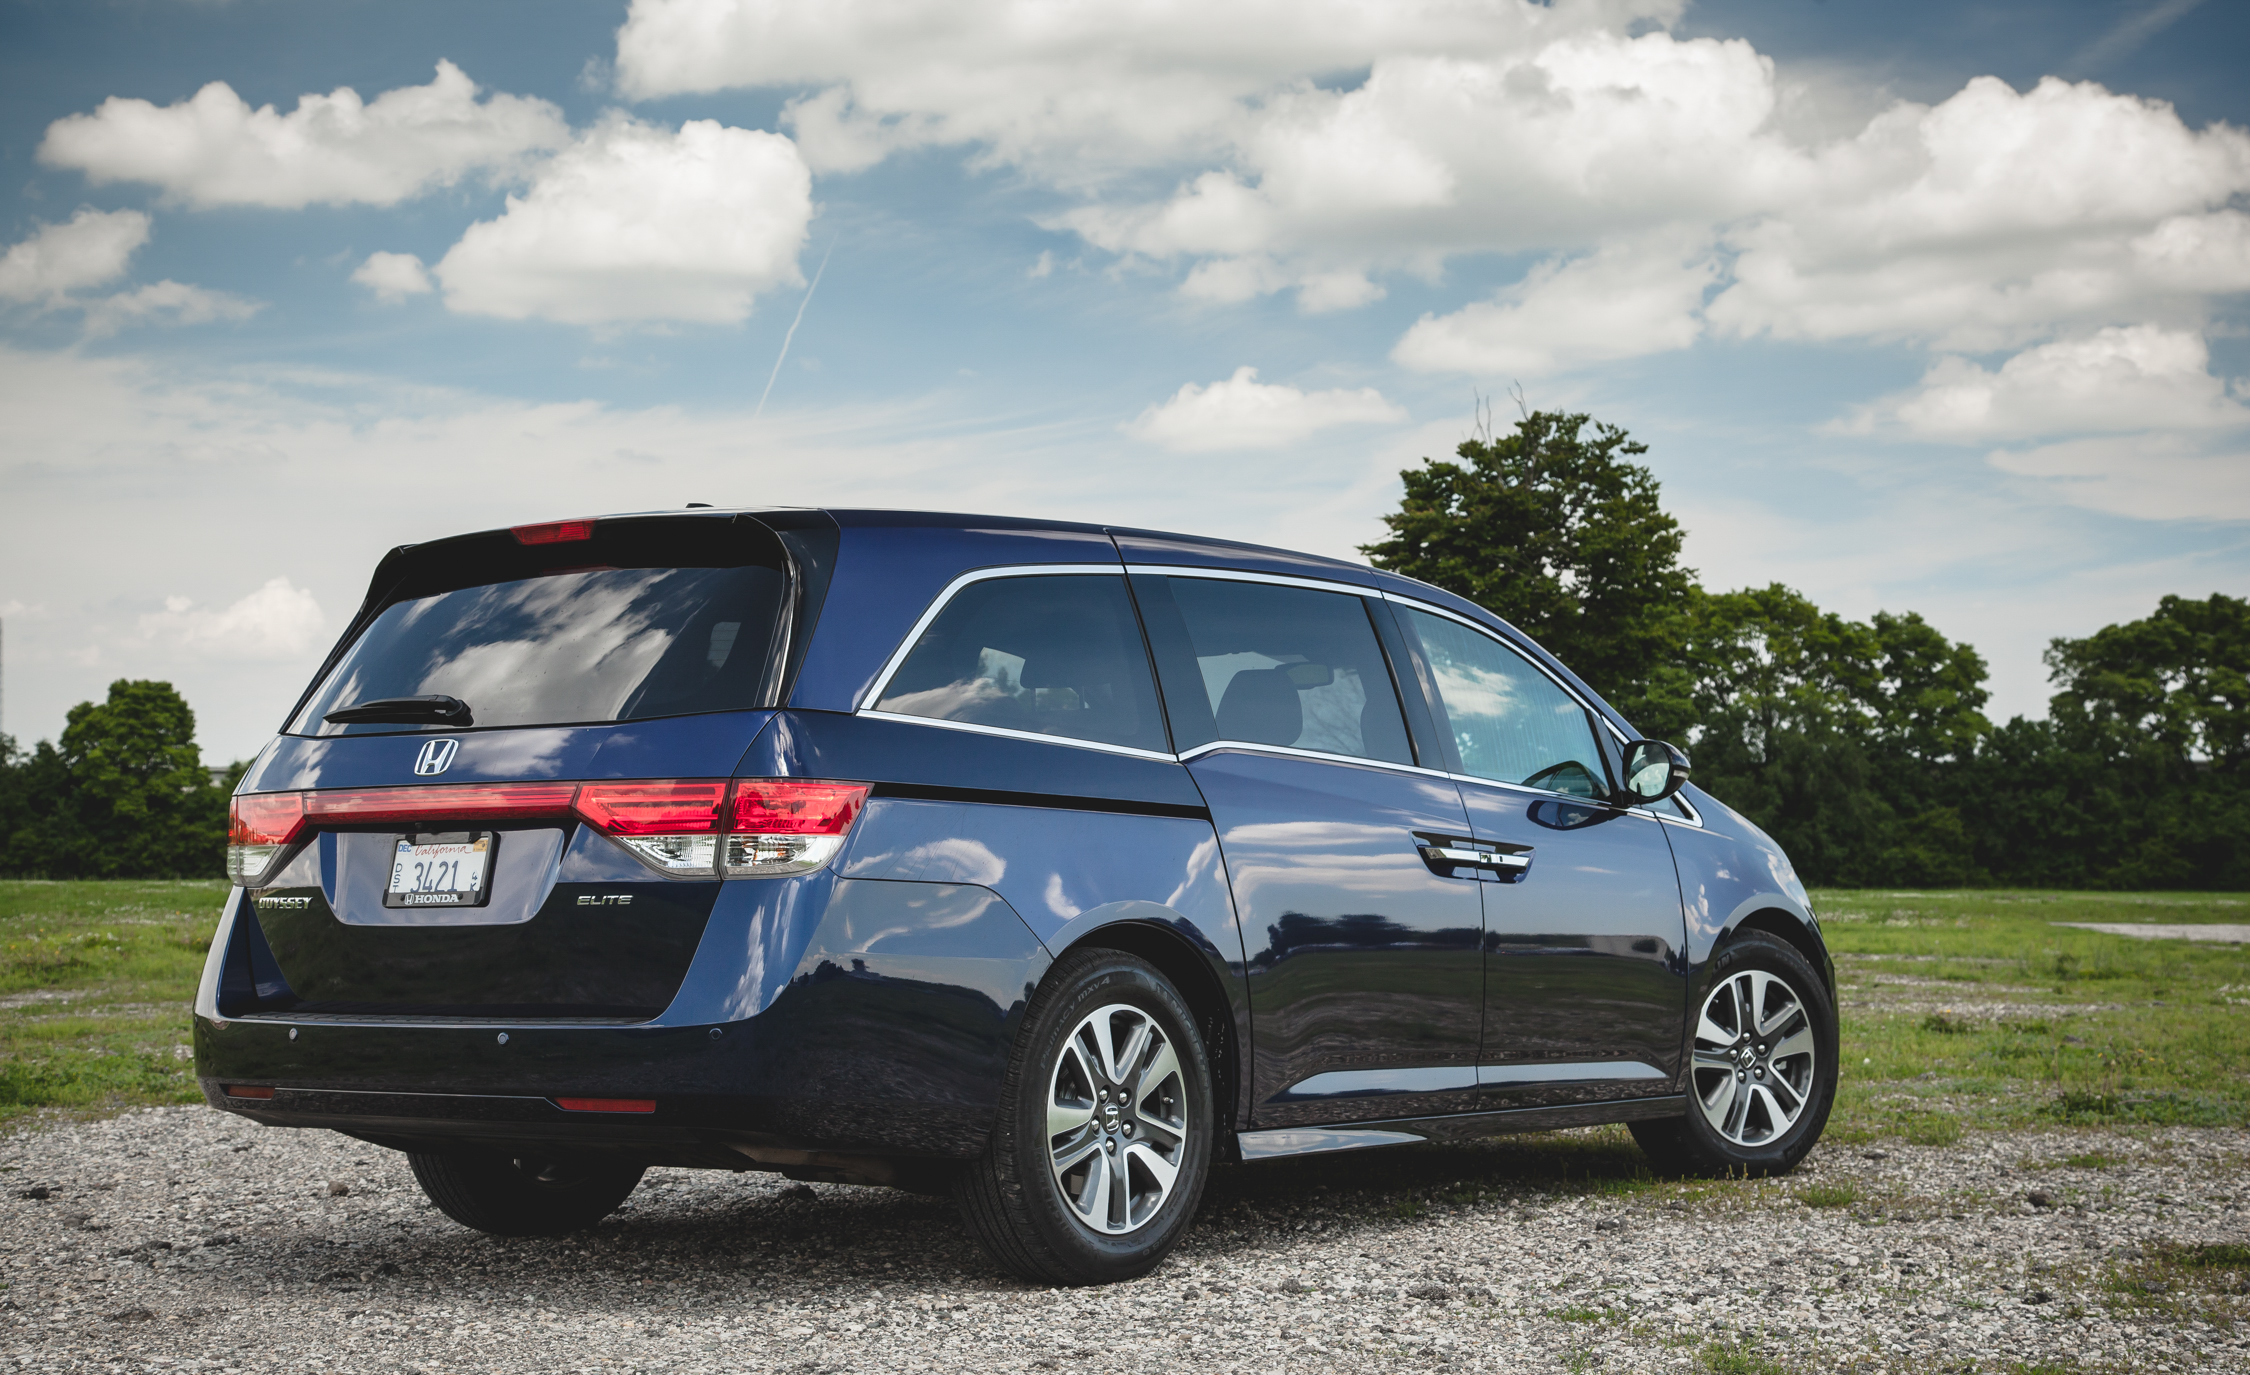 2014 Honda Odyssey Touring Elite (View 3 of 19)